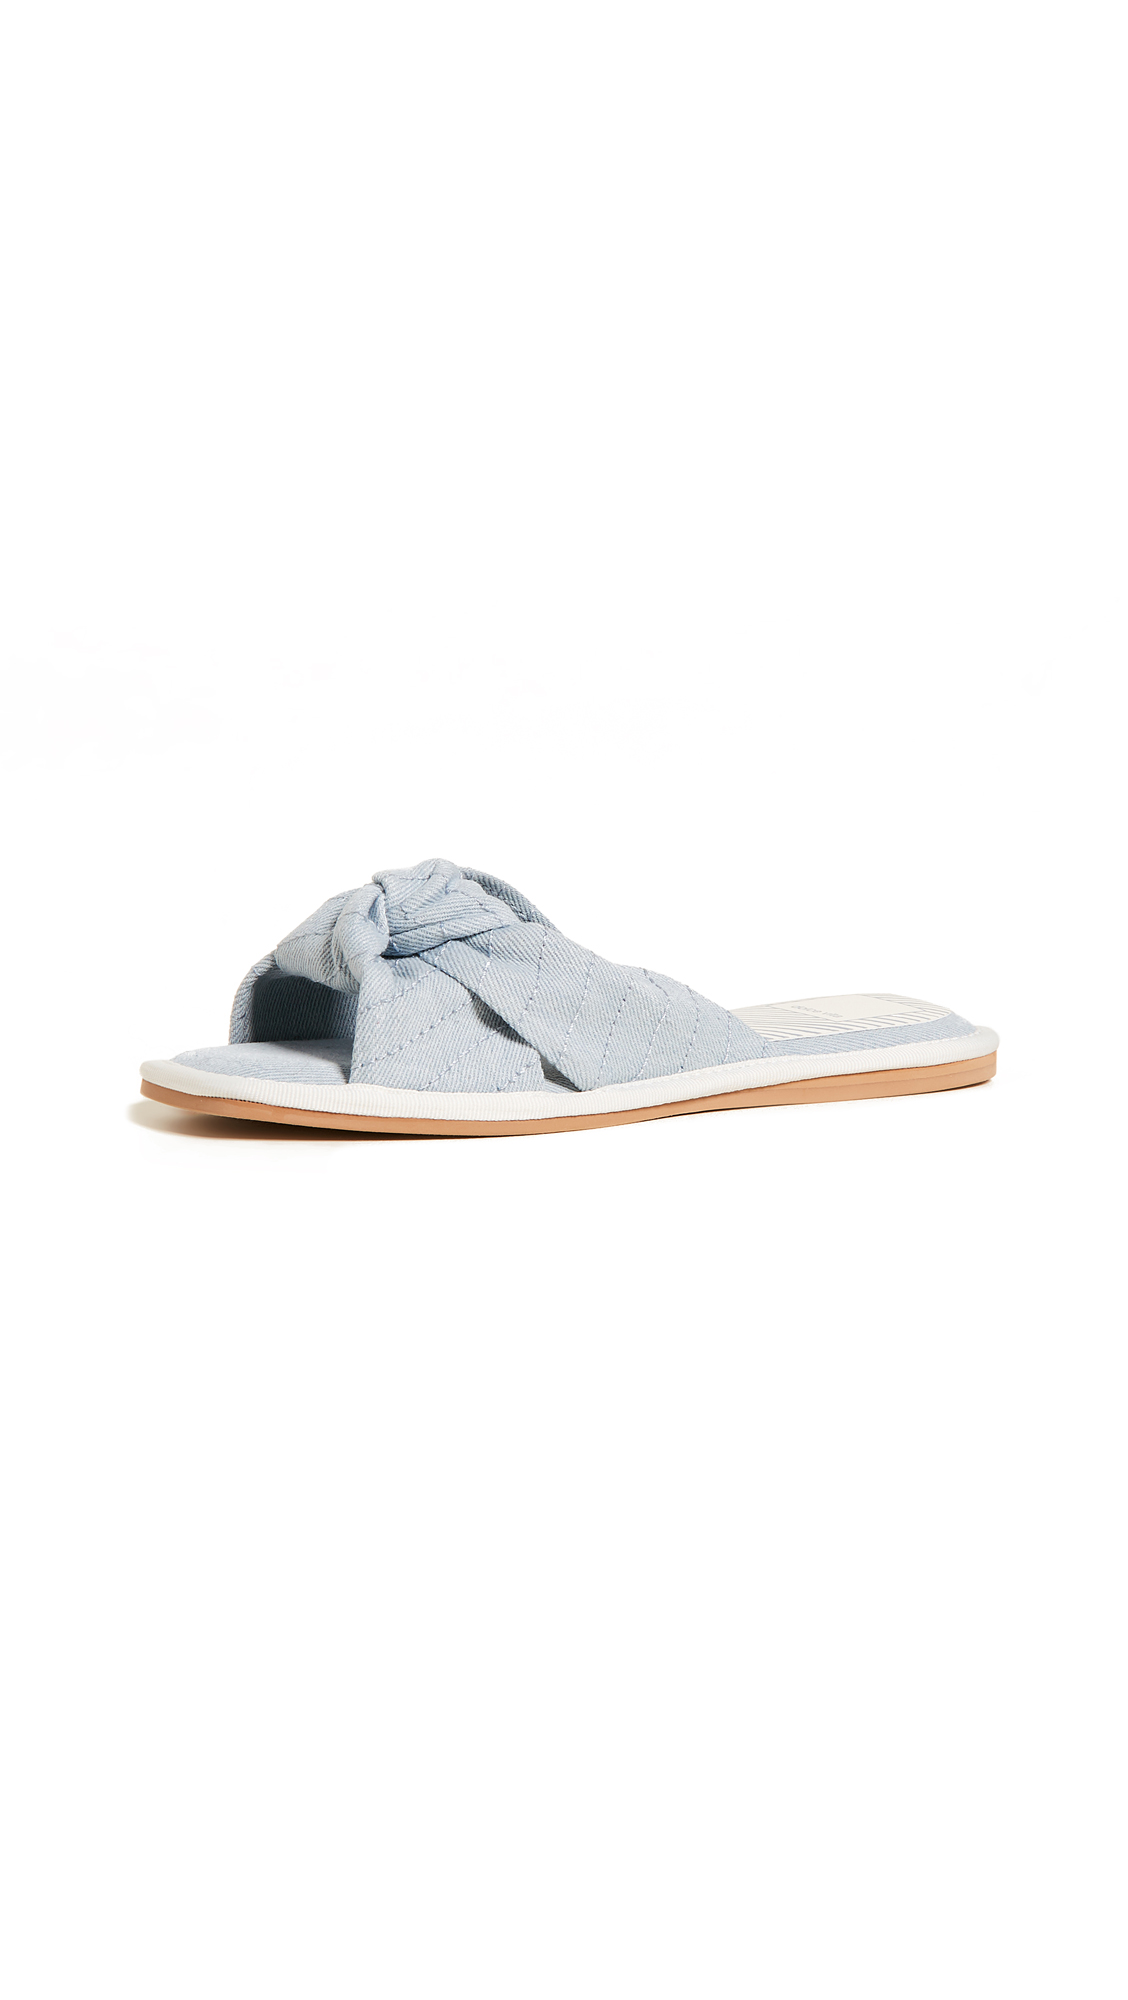 Dolce Vita Halle Slides - Light Blue